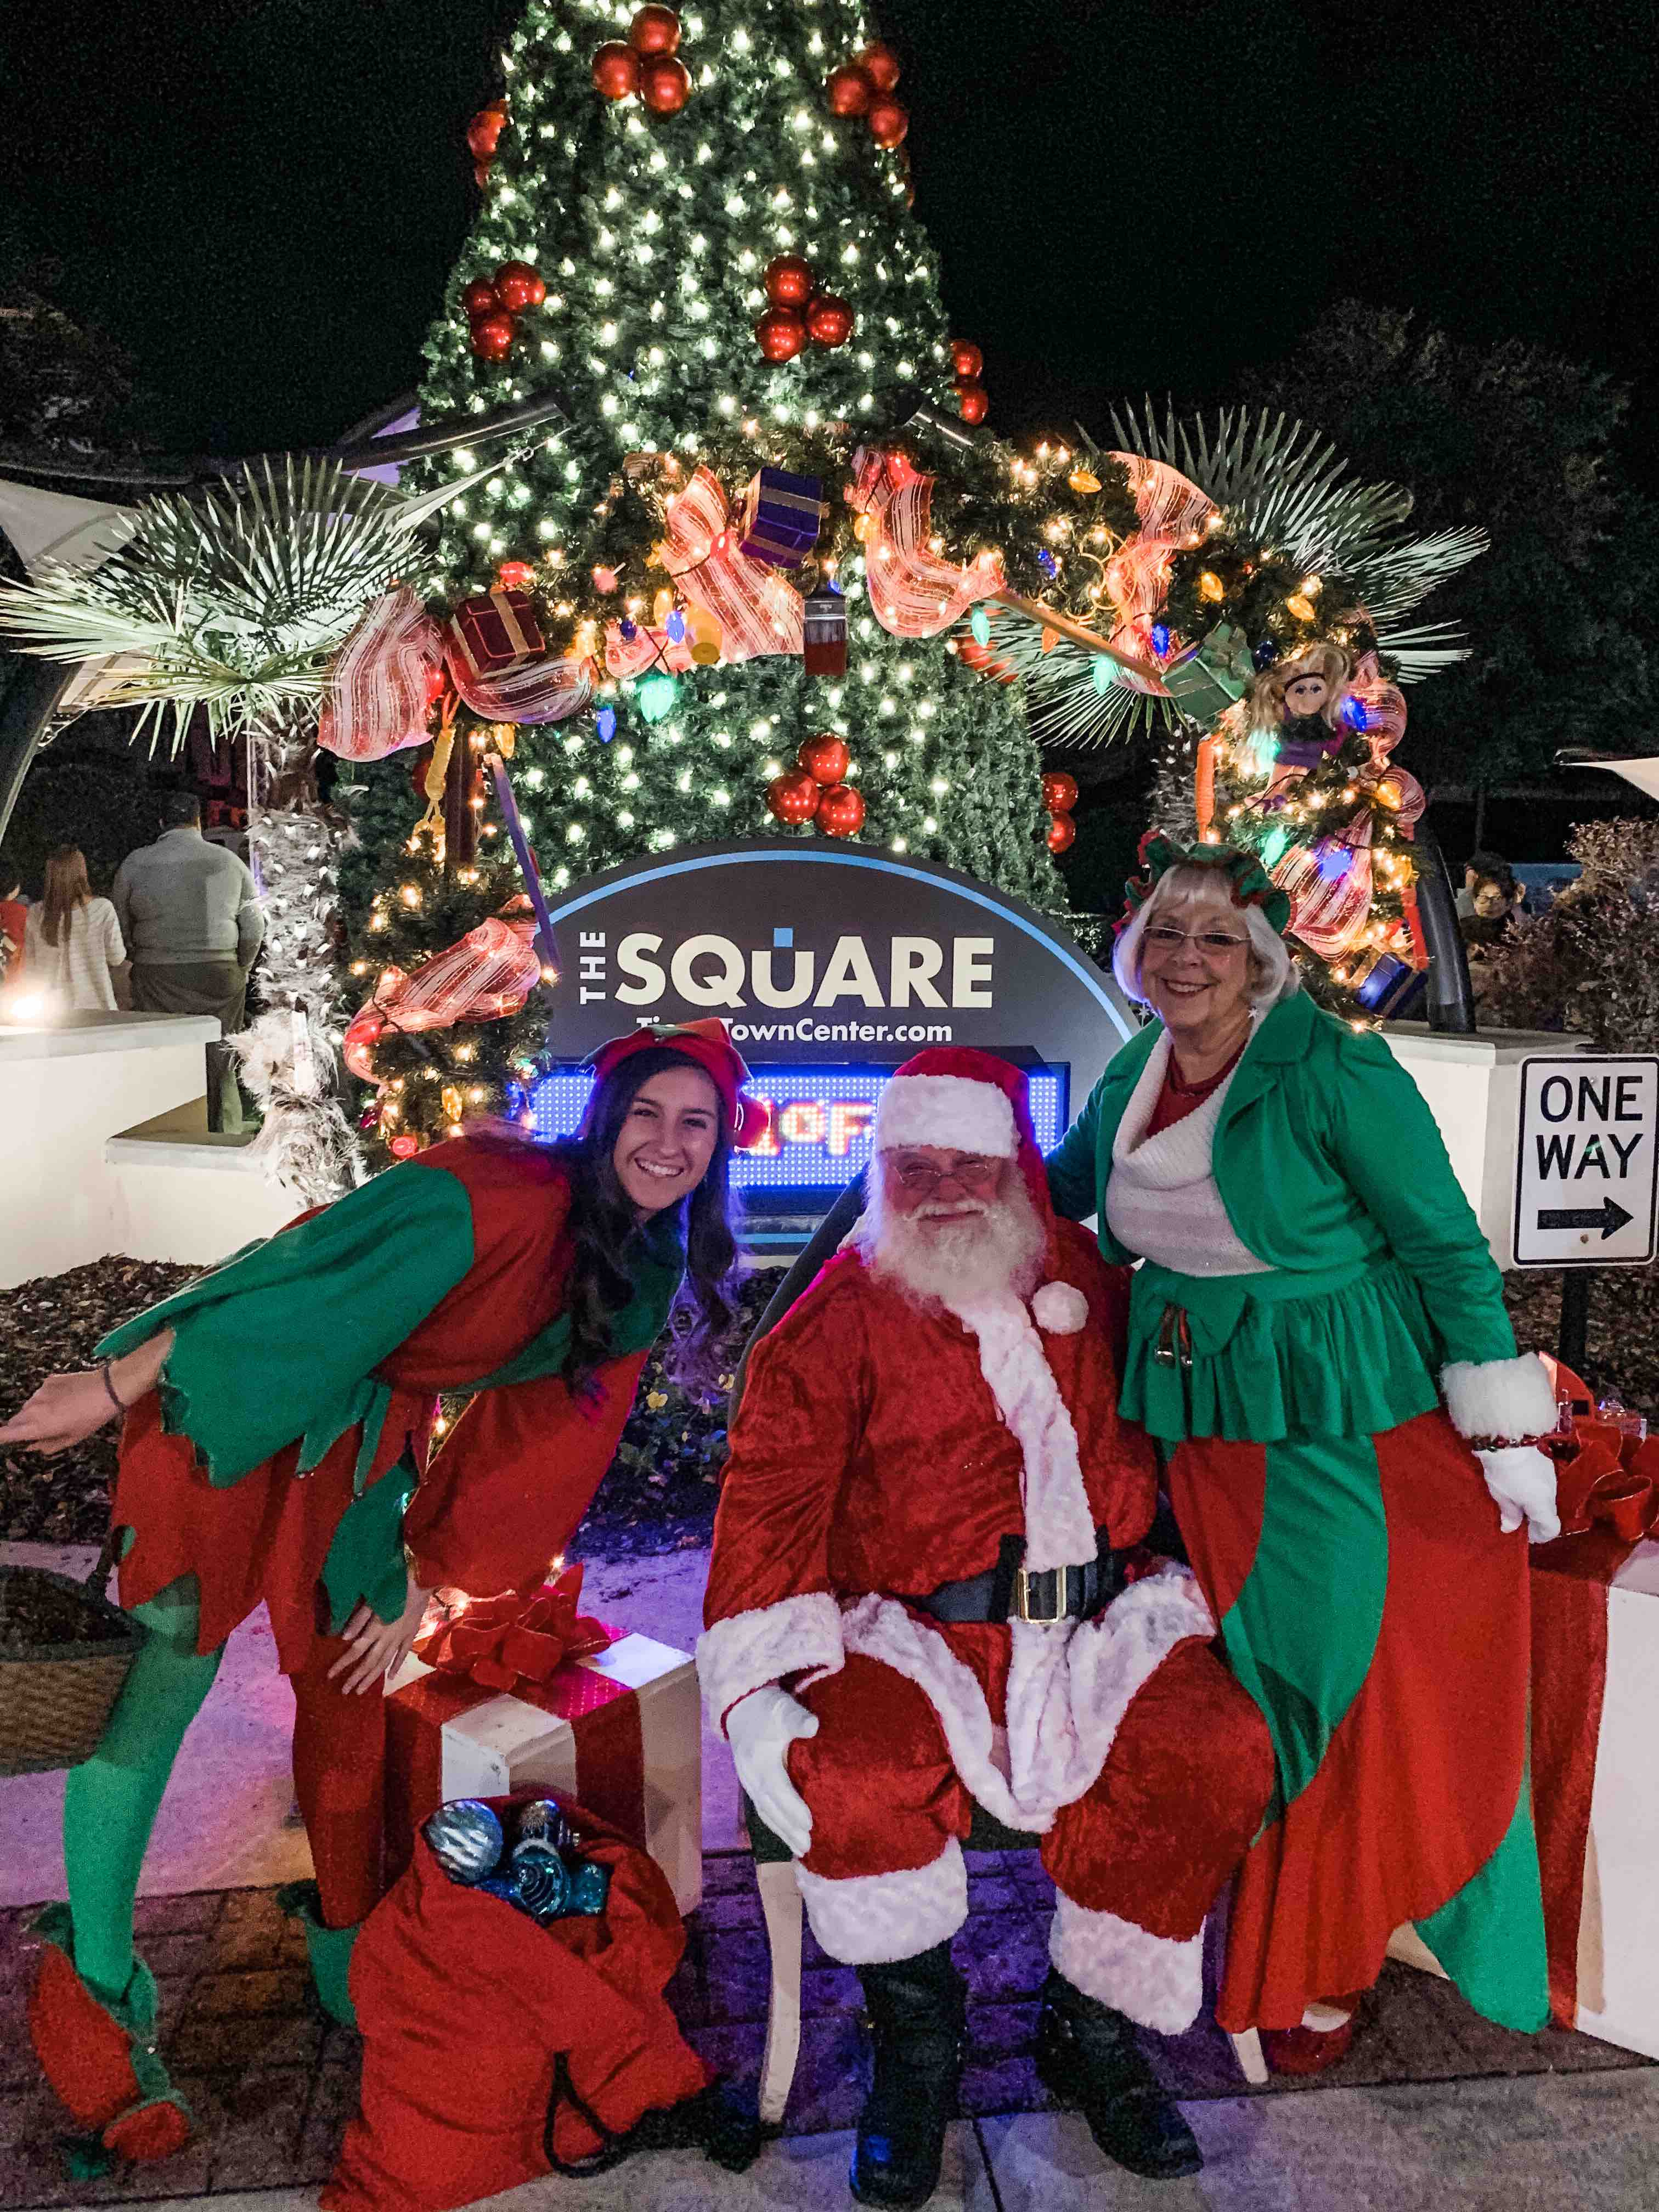 Santa Clause look a like and helpers in front of a Christmas Tree at night in Tioga Town Center